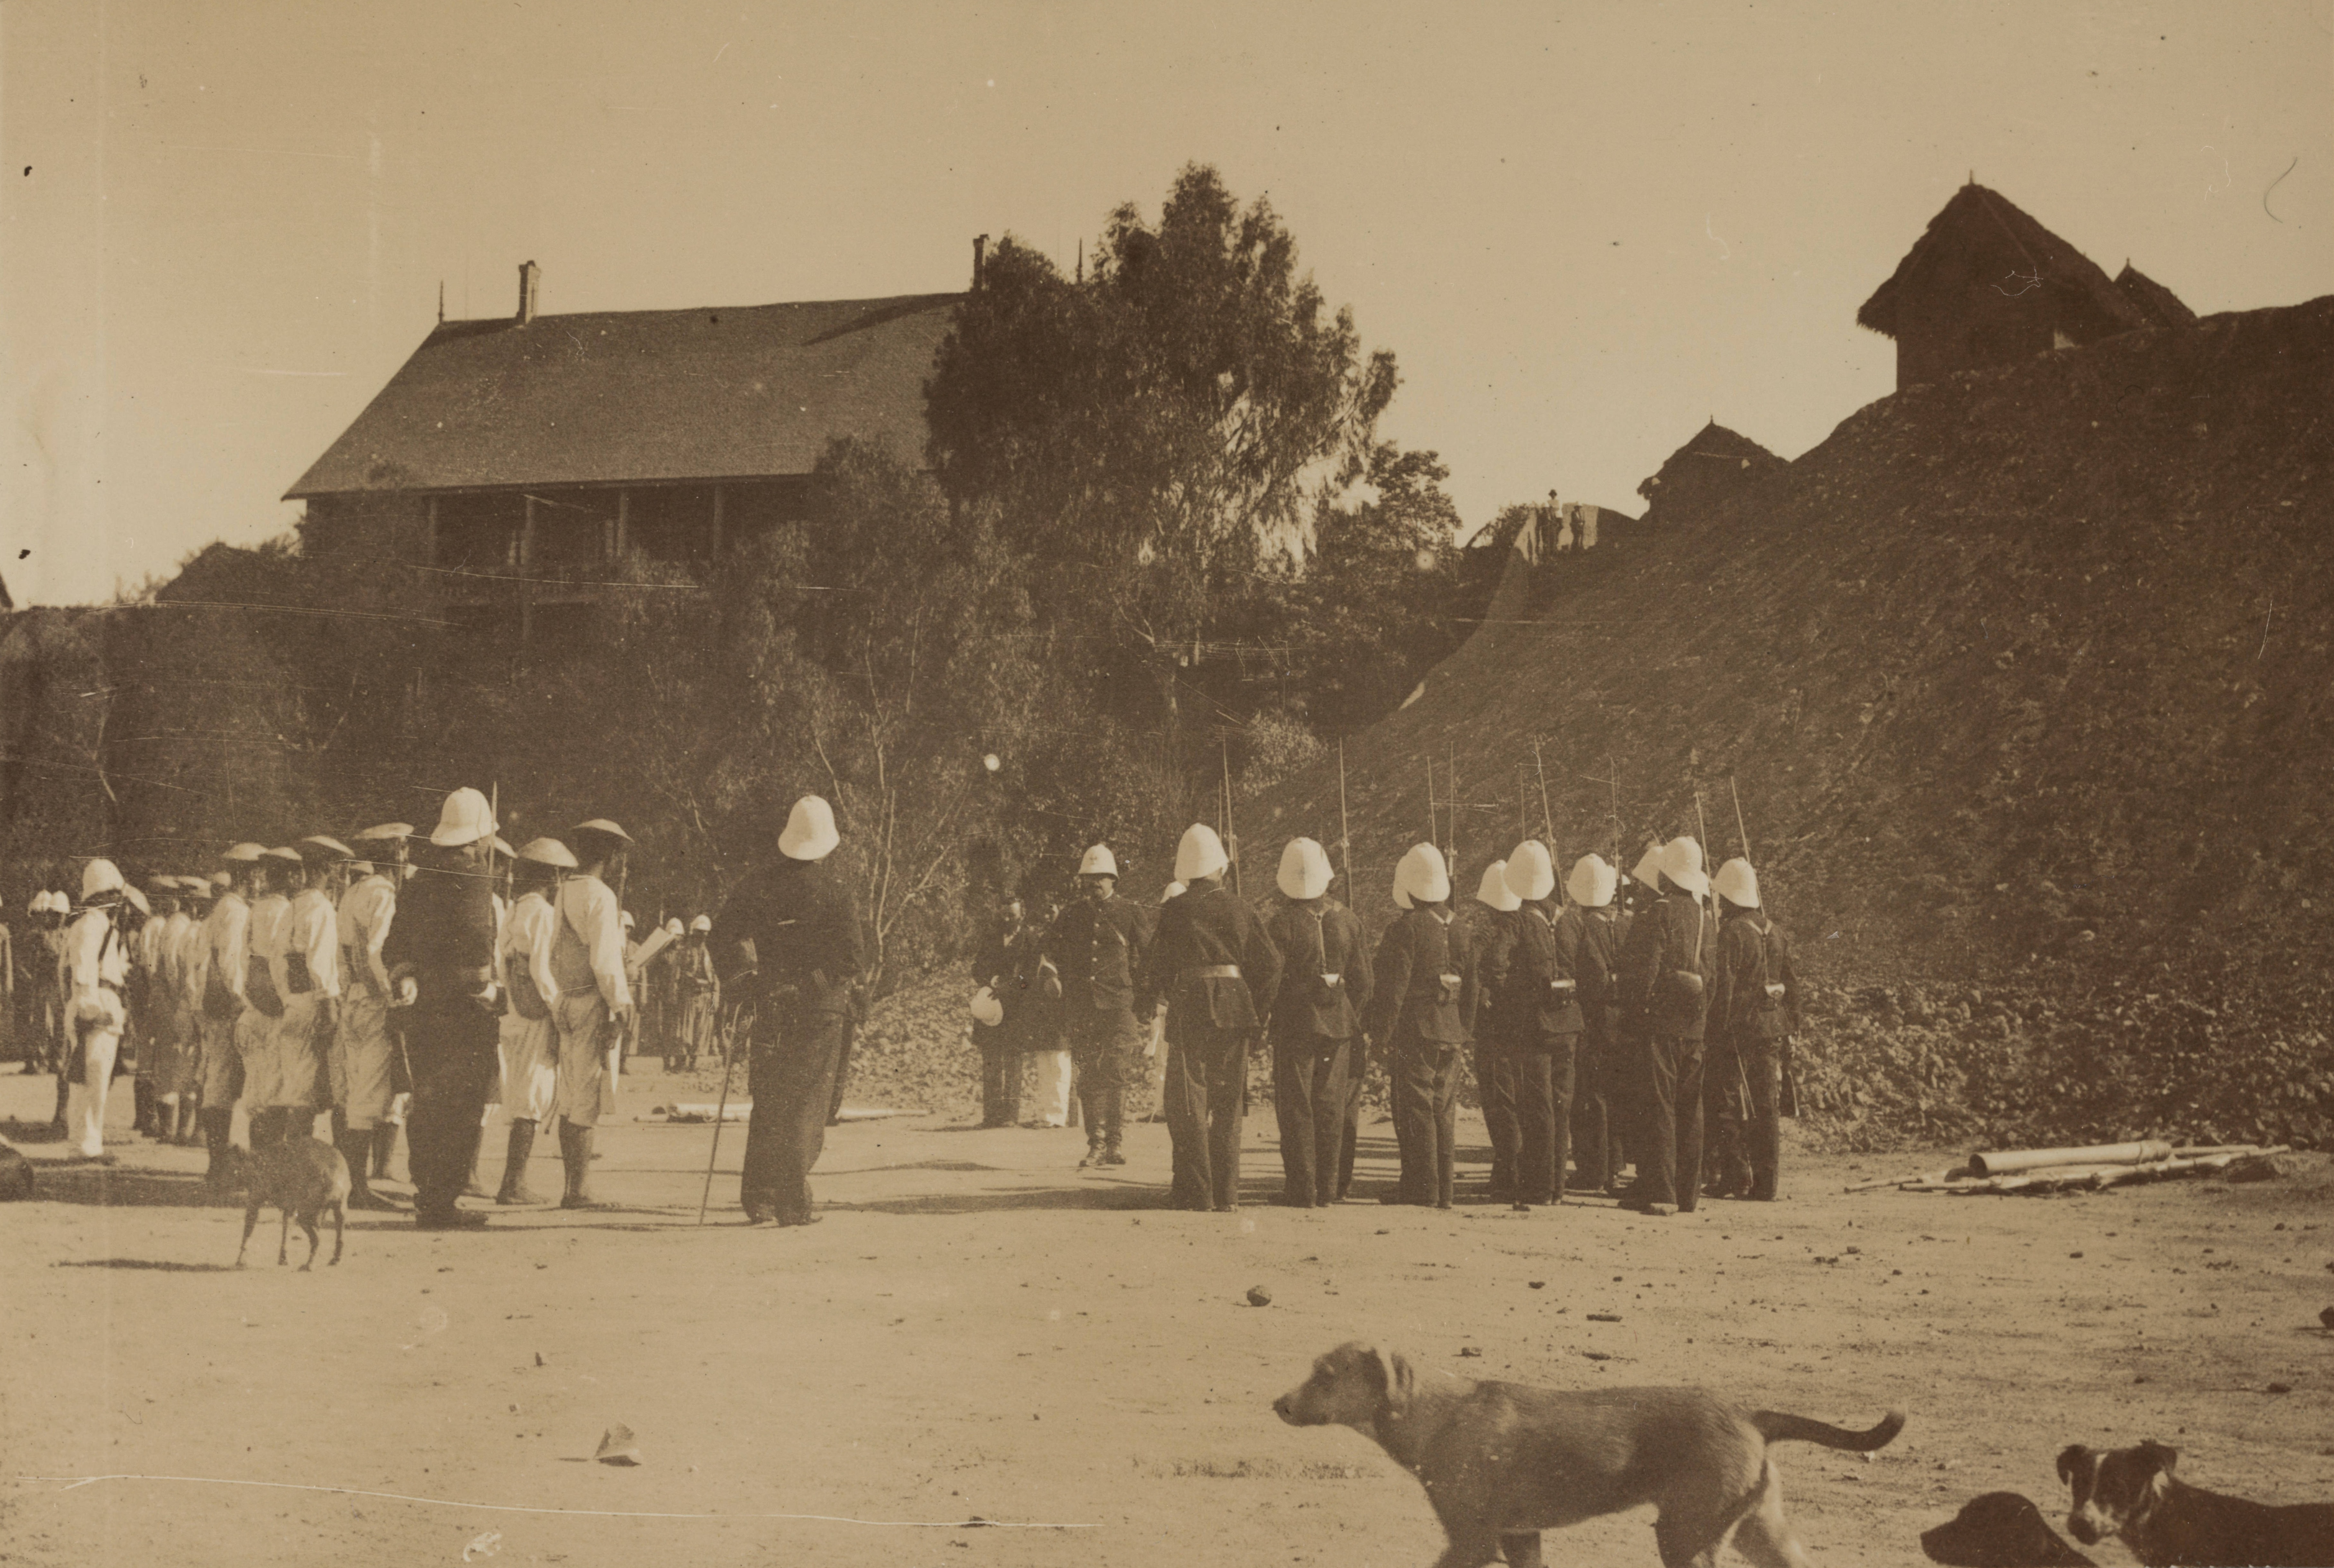 What Is Life 360 >> File:Execution of rebels, Madagascar, 1896 (impa-m415).jpg - Wikimedia Commons